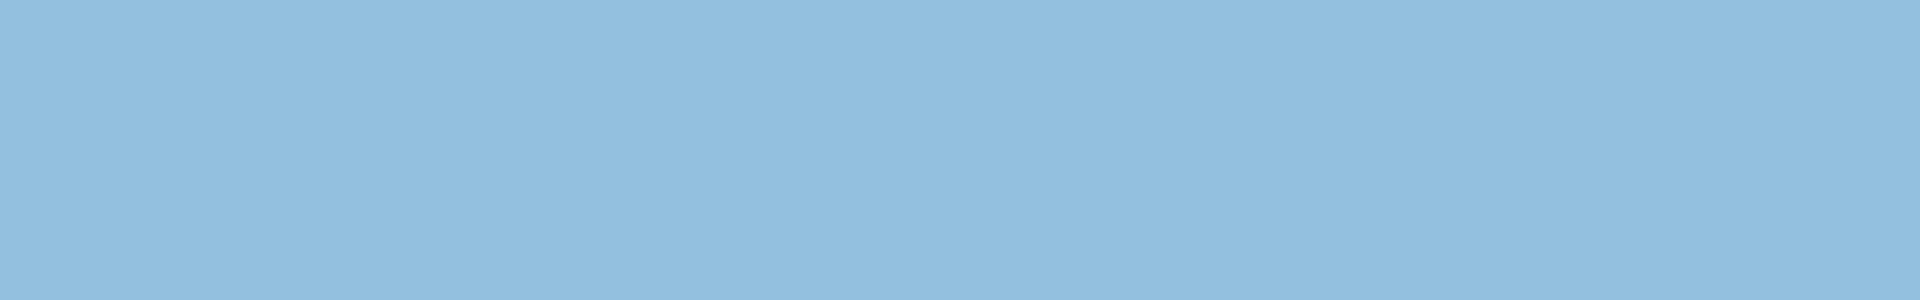 Light Blue Banner